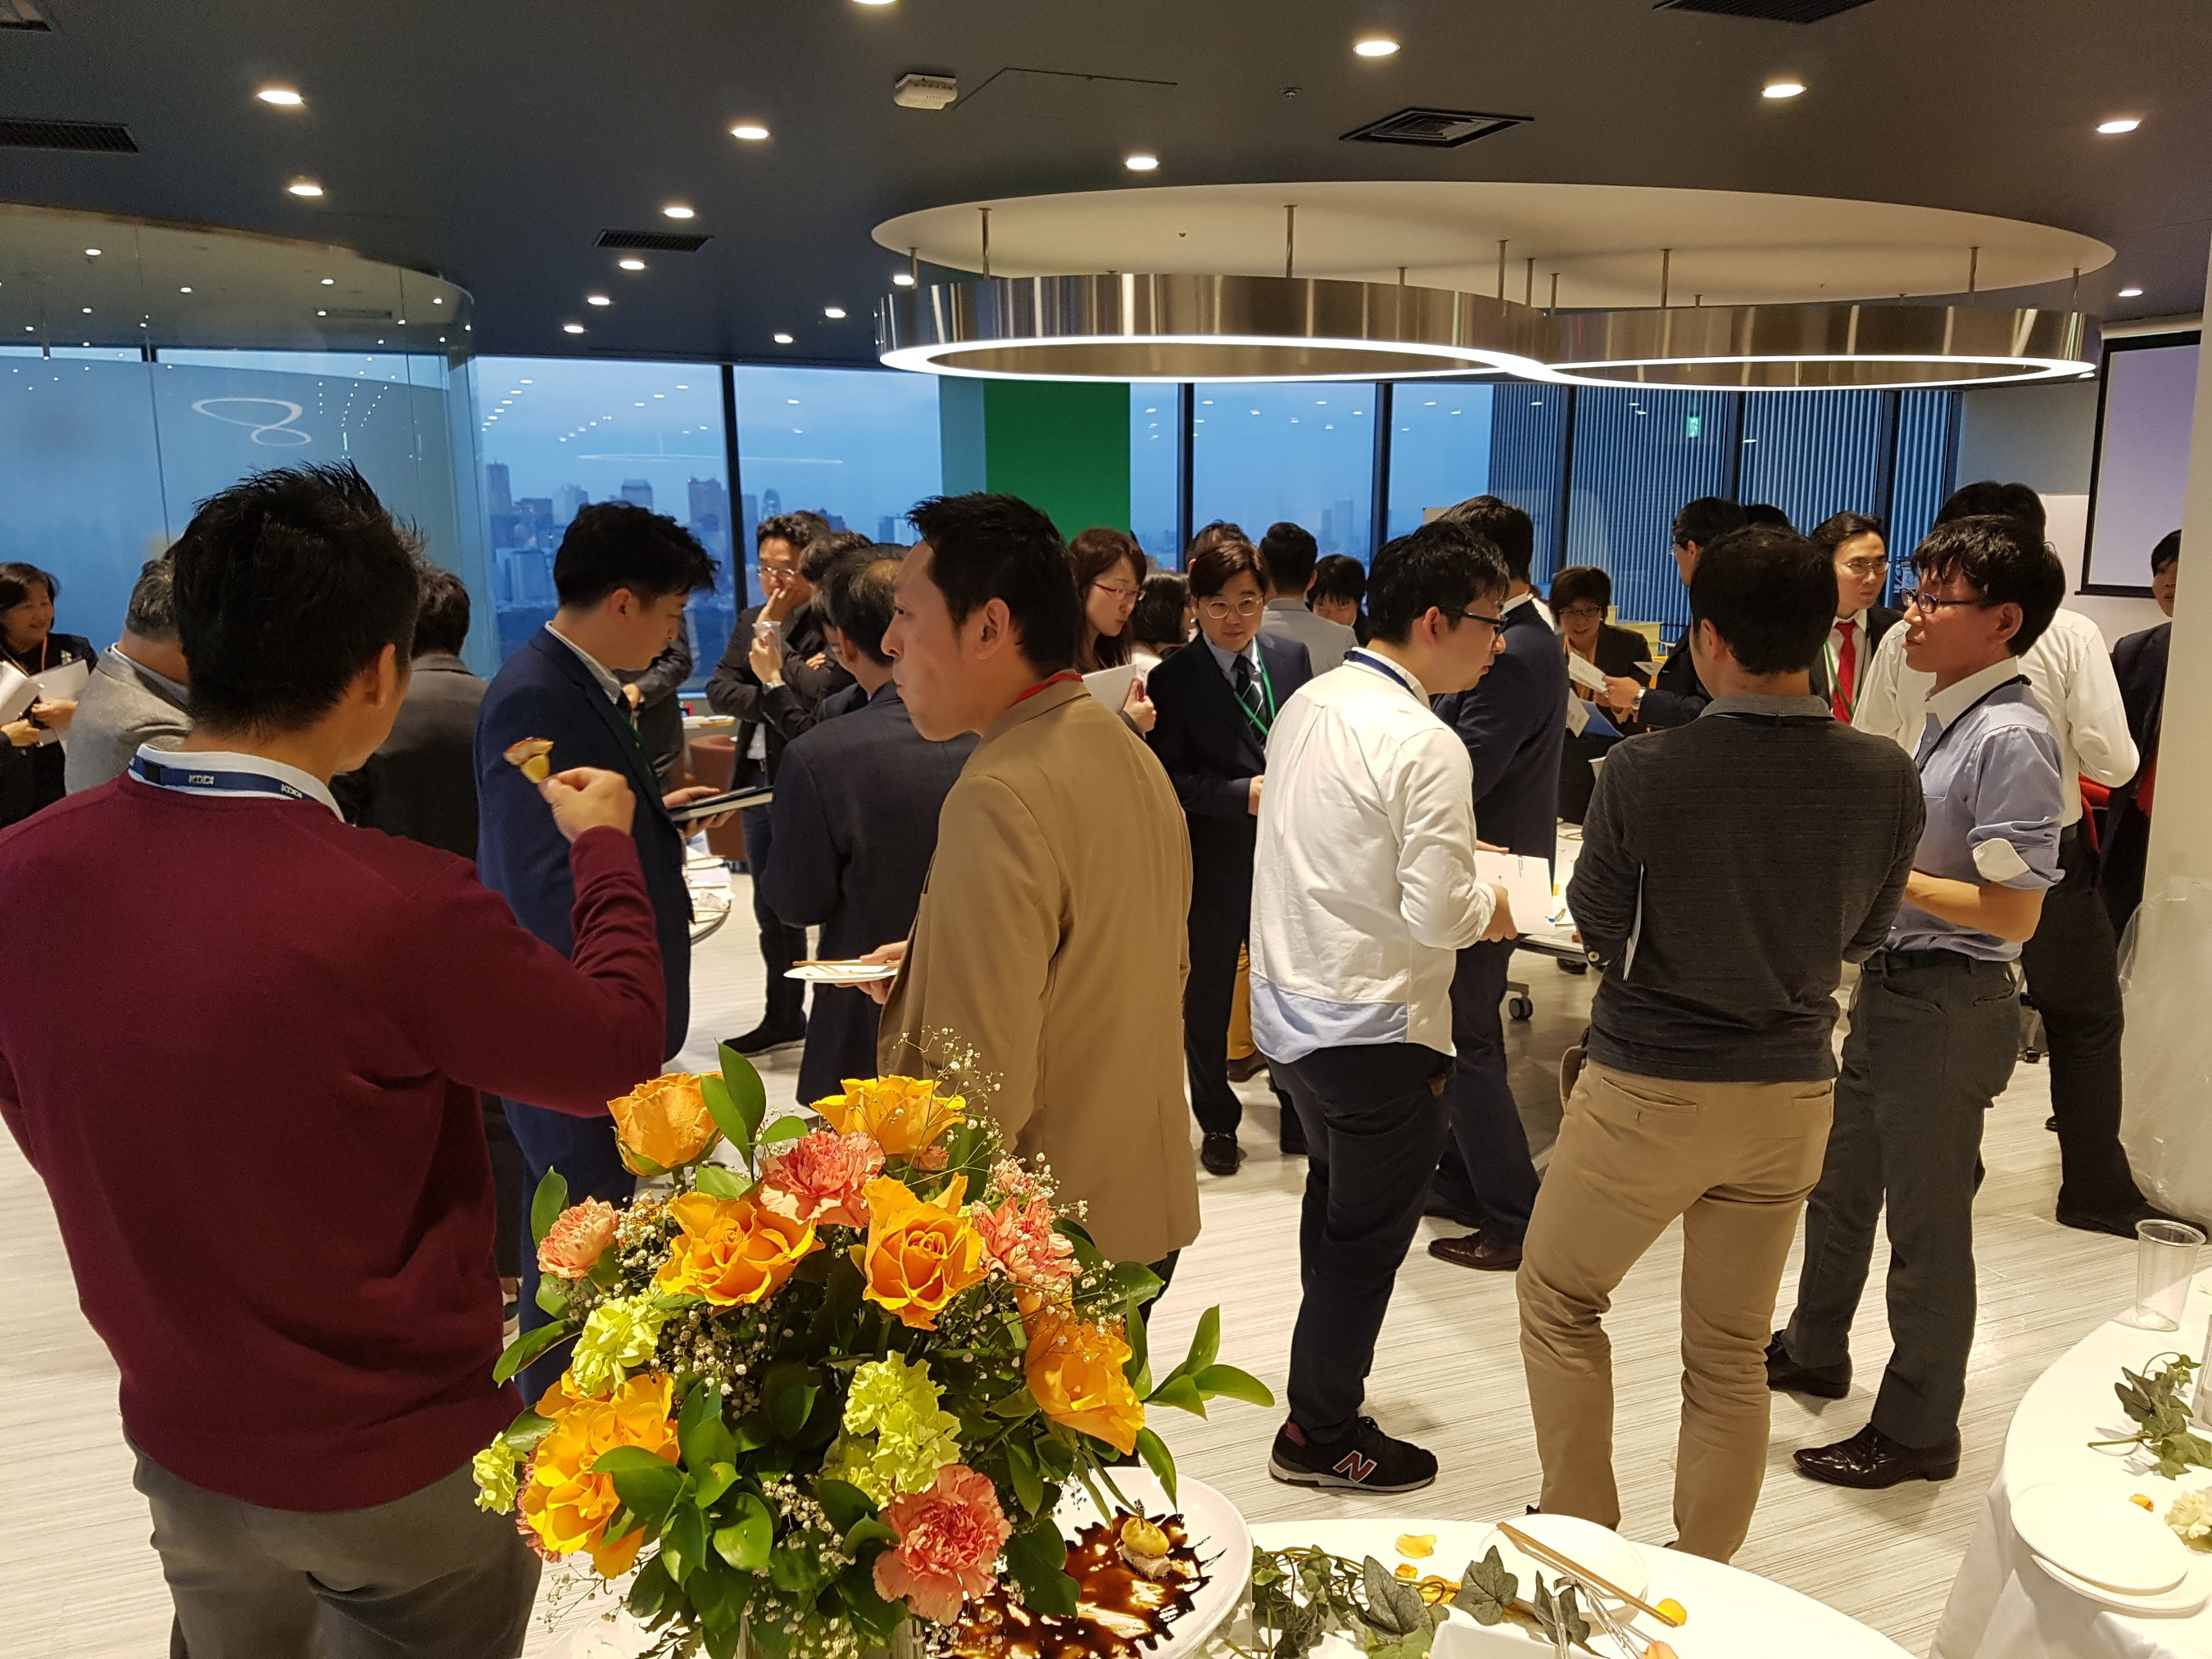 2018 Q1 IoT Roadshow Networking Event - Japan